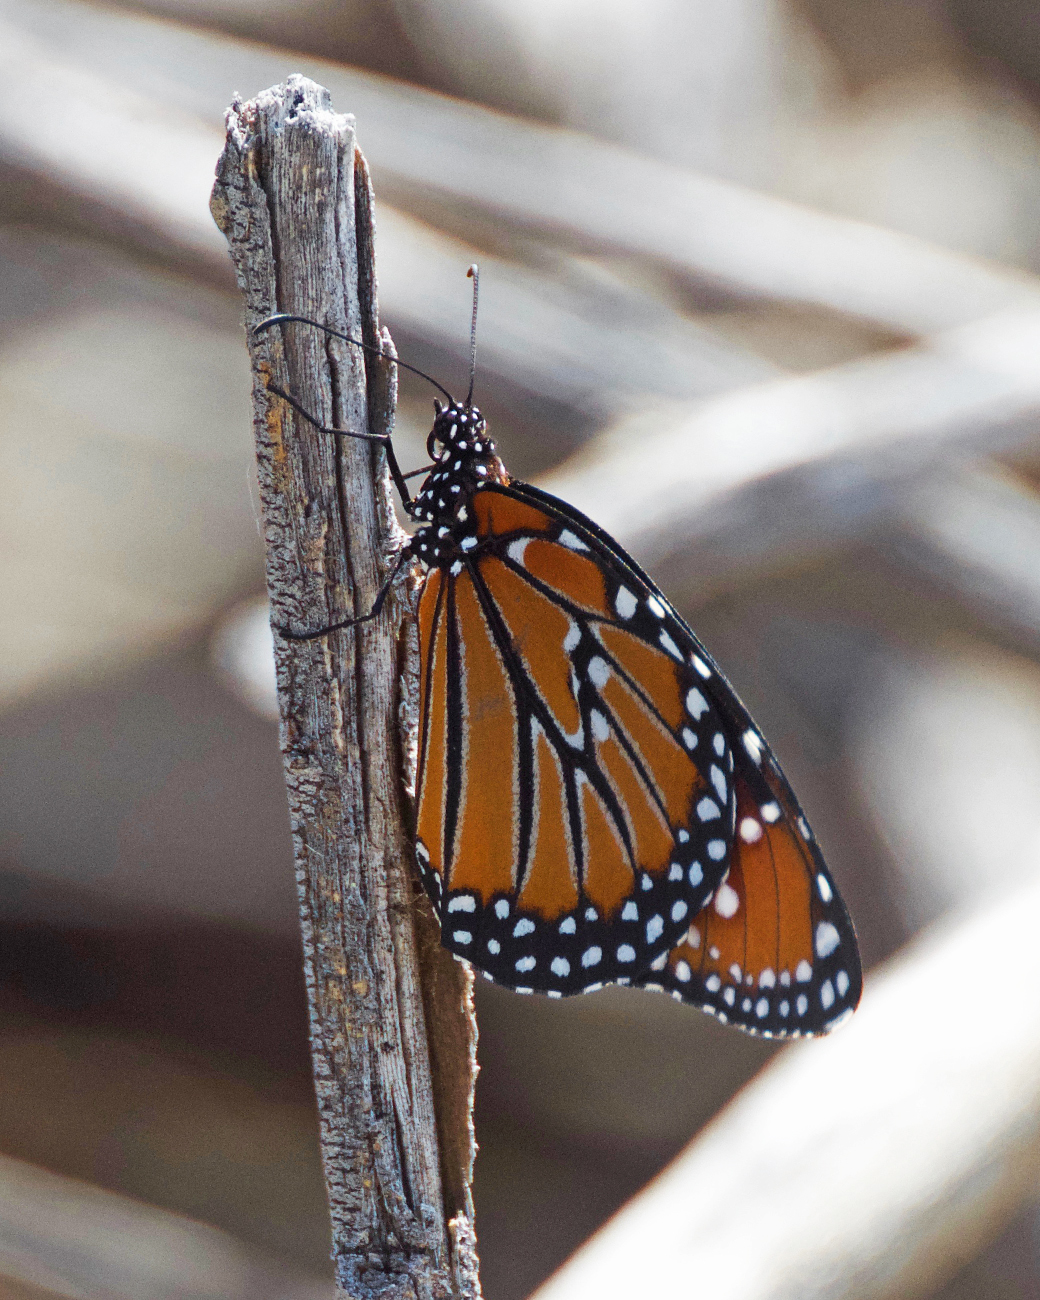 Queen Butterfly (a species of Monarch) at Daniels Ranch